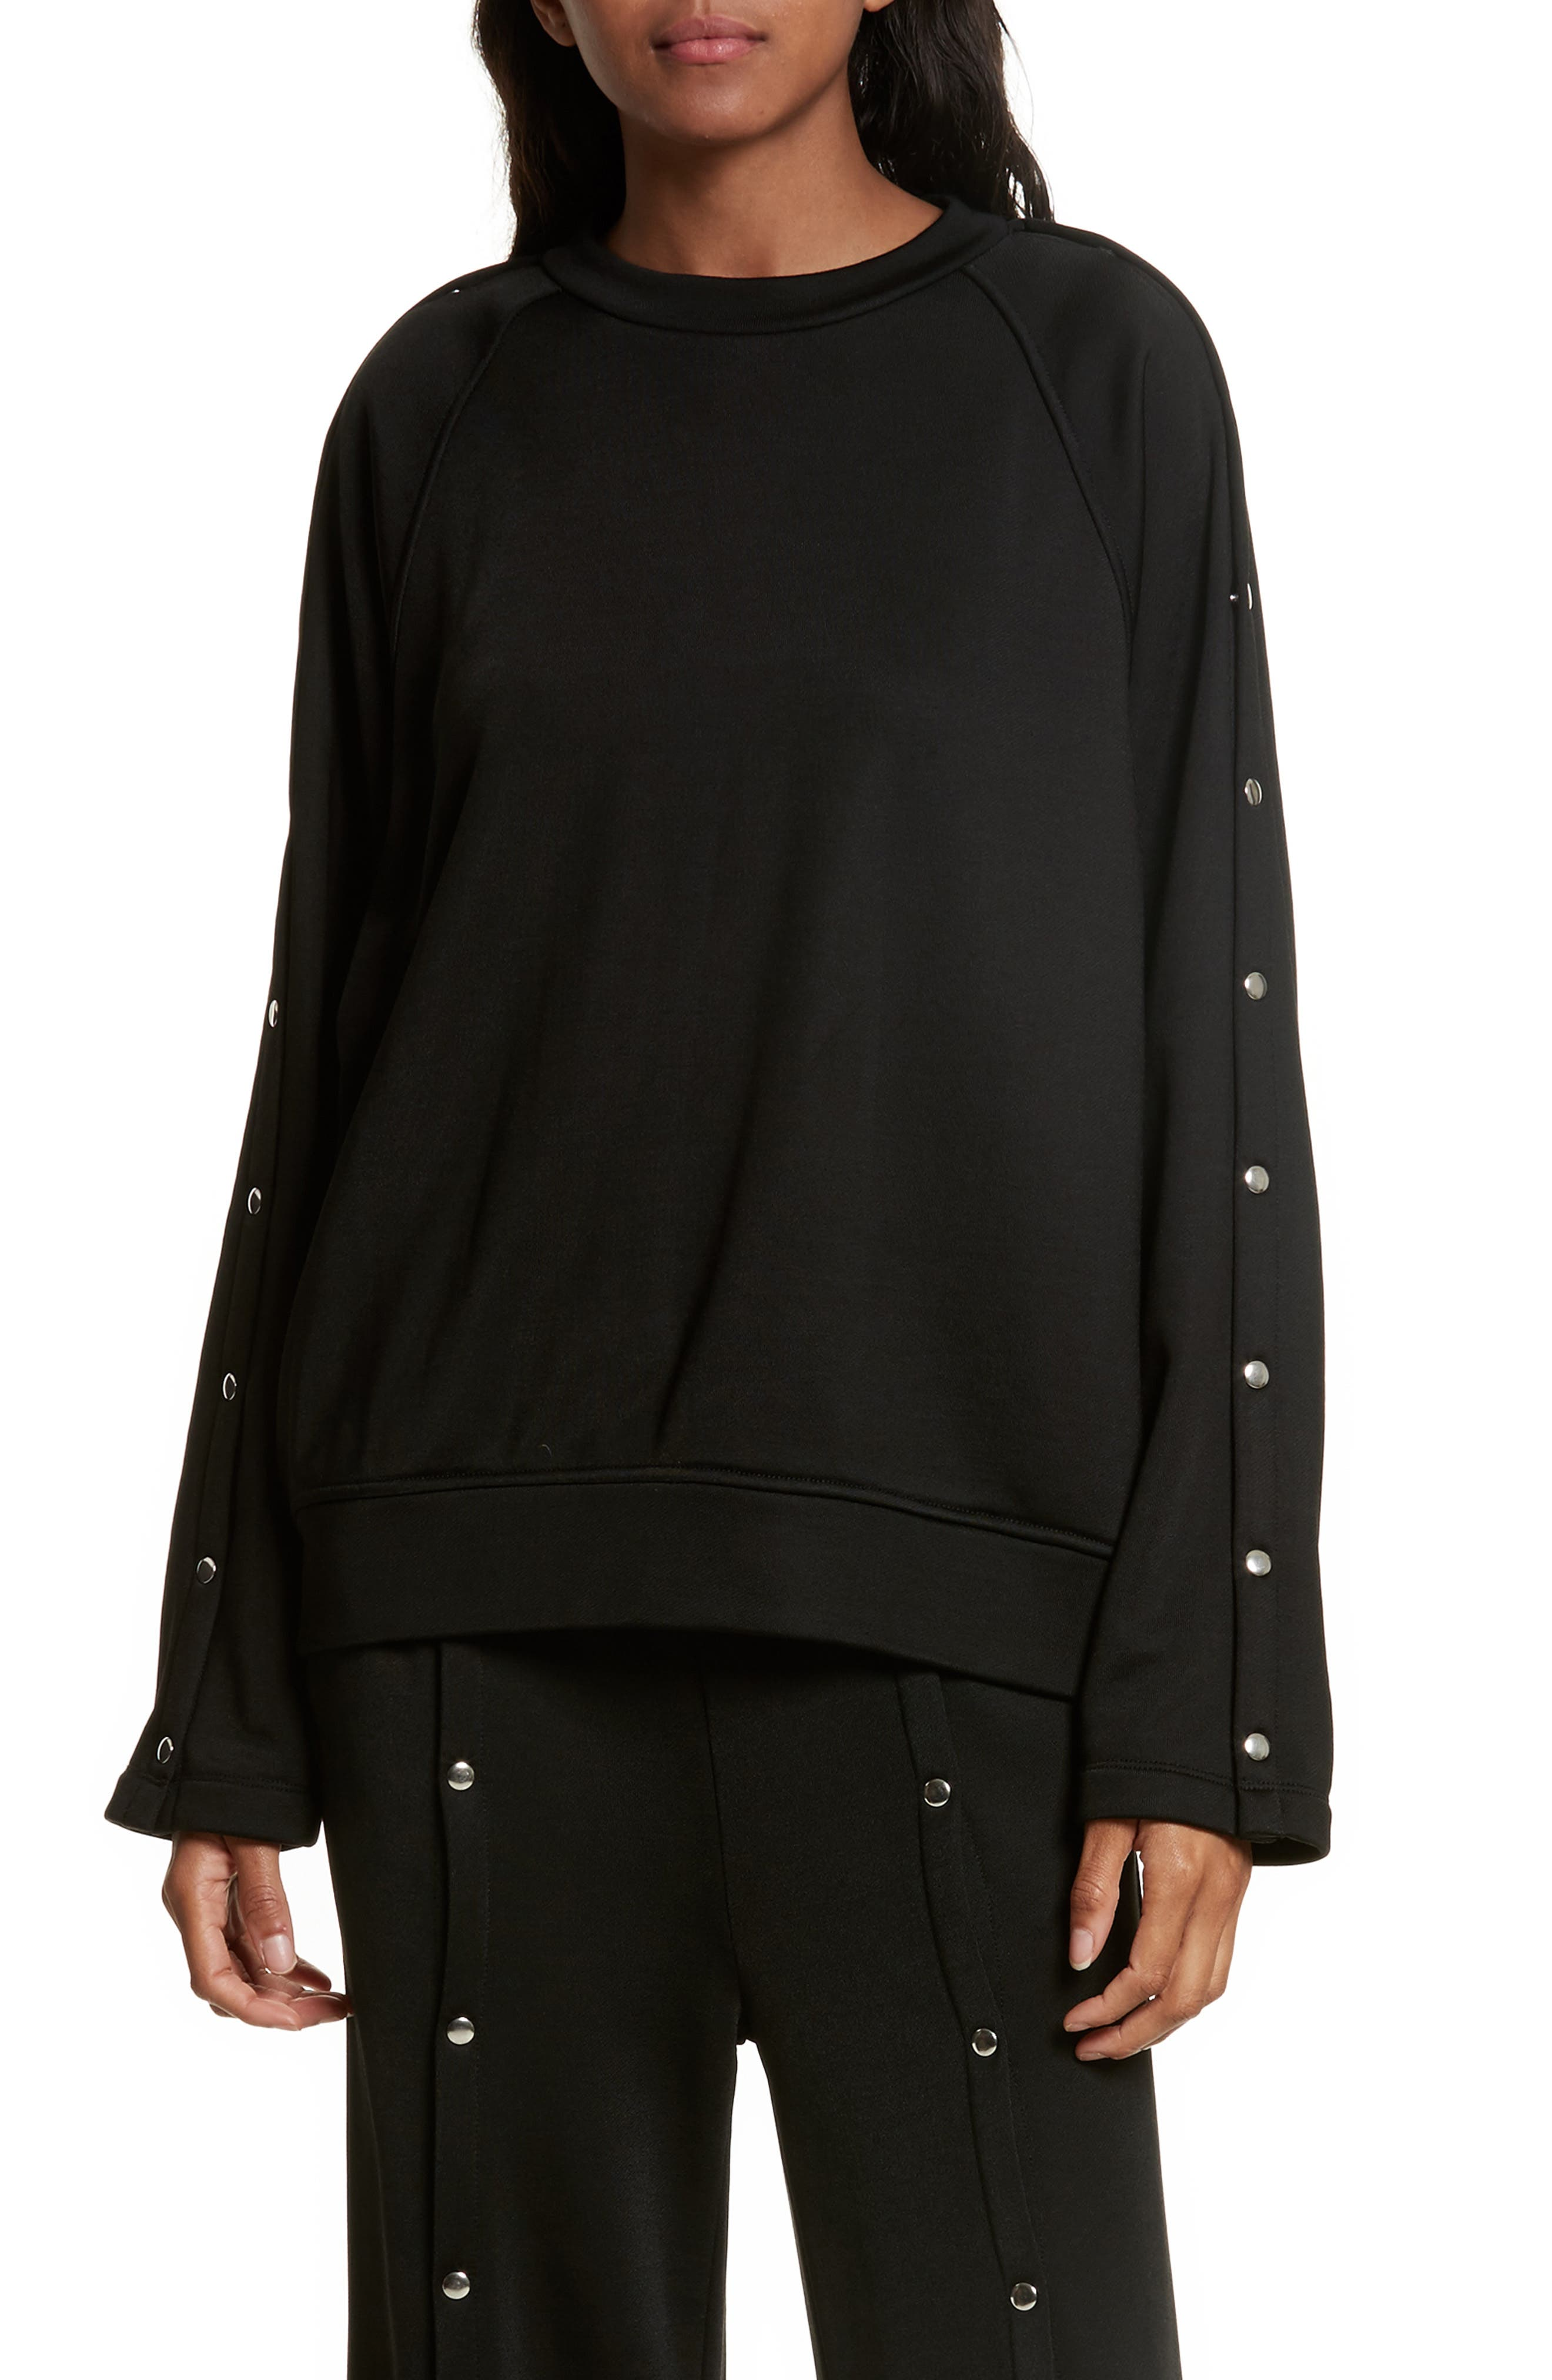 French Terry Sweatshirt,                         Main,                         color, Black